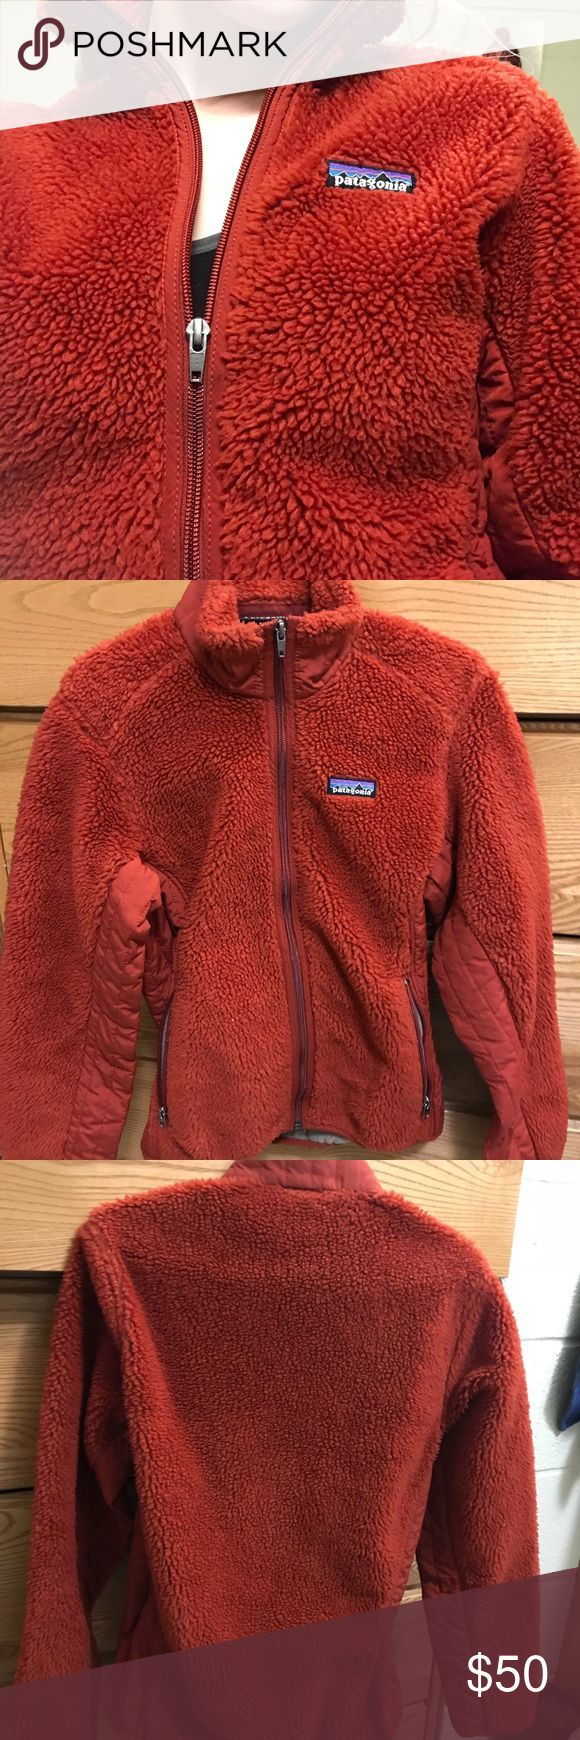 red zip up patagonia jacket!! super soft and very cute red patagonia zip up! great quality, i just sadly never wear it enough :/ it's hard putting this up for sale, but it deserves a better home!! size xs but can also fit a small. no sign of wear         sherpa, fleece, patagonia, vintage, outdoors, hiking, Patagonia Jackets & Coats